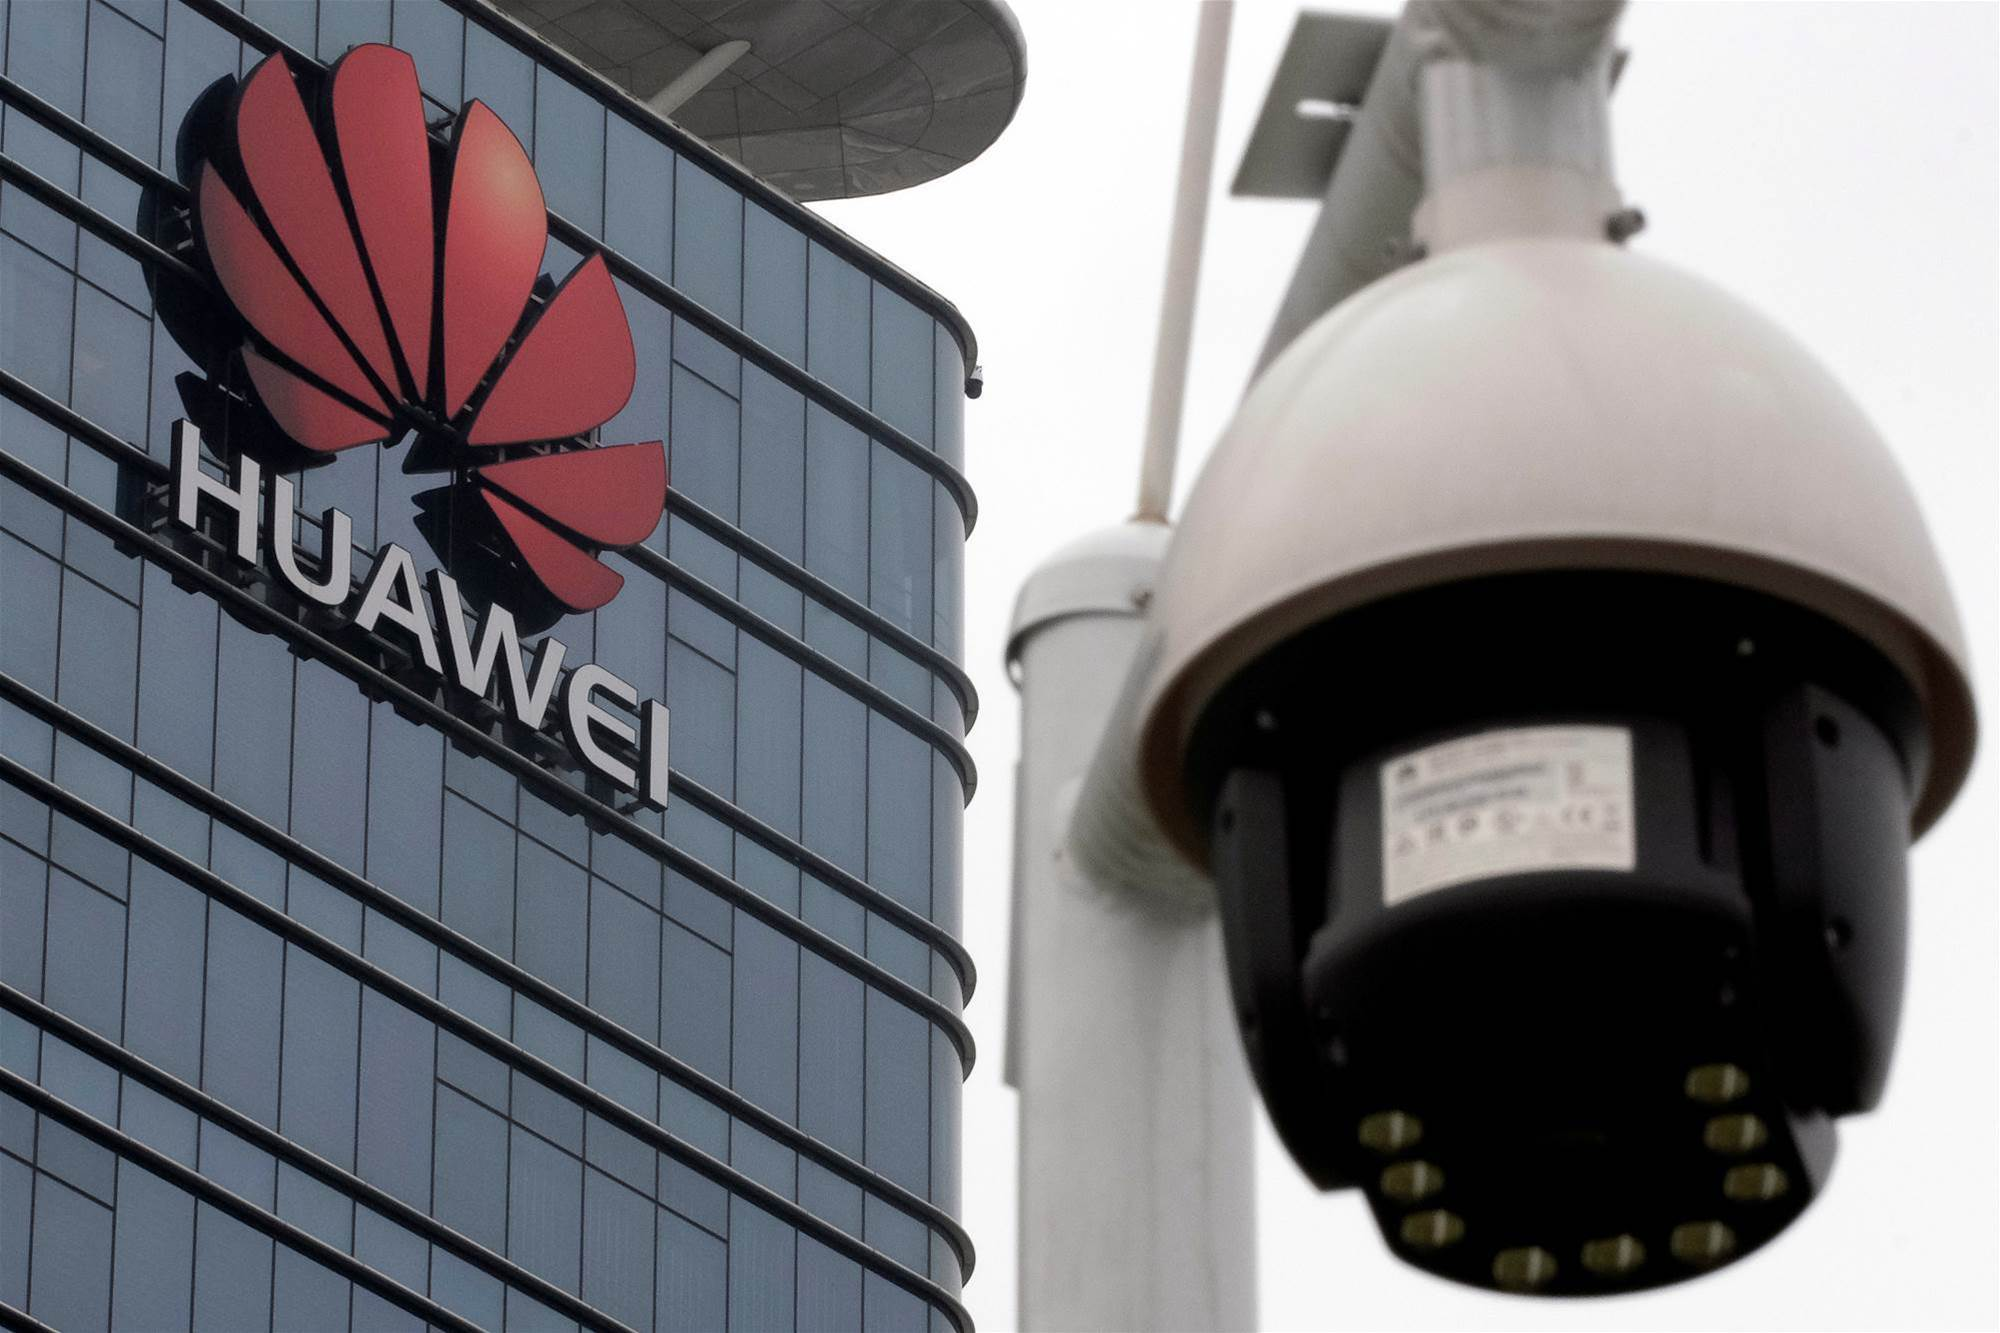 EU demands scrutiny of 5G risks but no bloc-wide Huawei ban